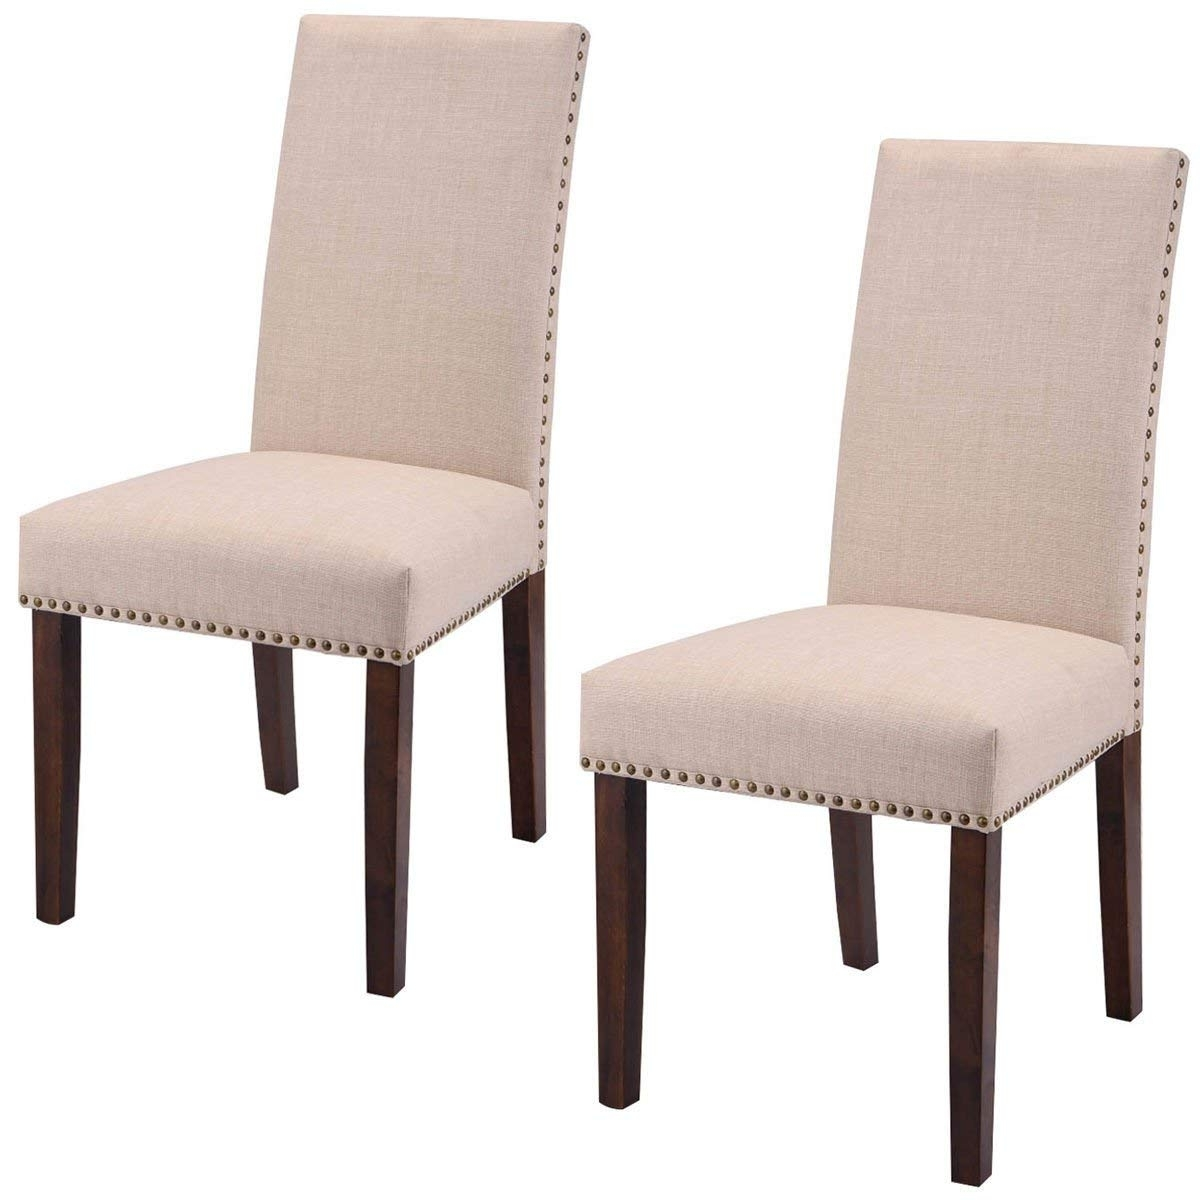 Well Liked Amazon – Giantex Set Of 2 Fabric Upholstered High Back Dining With Armless Oatmeal Dining Chairs (View 20 of 20)